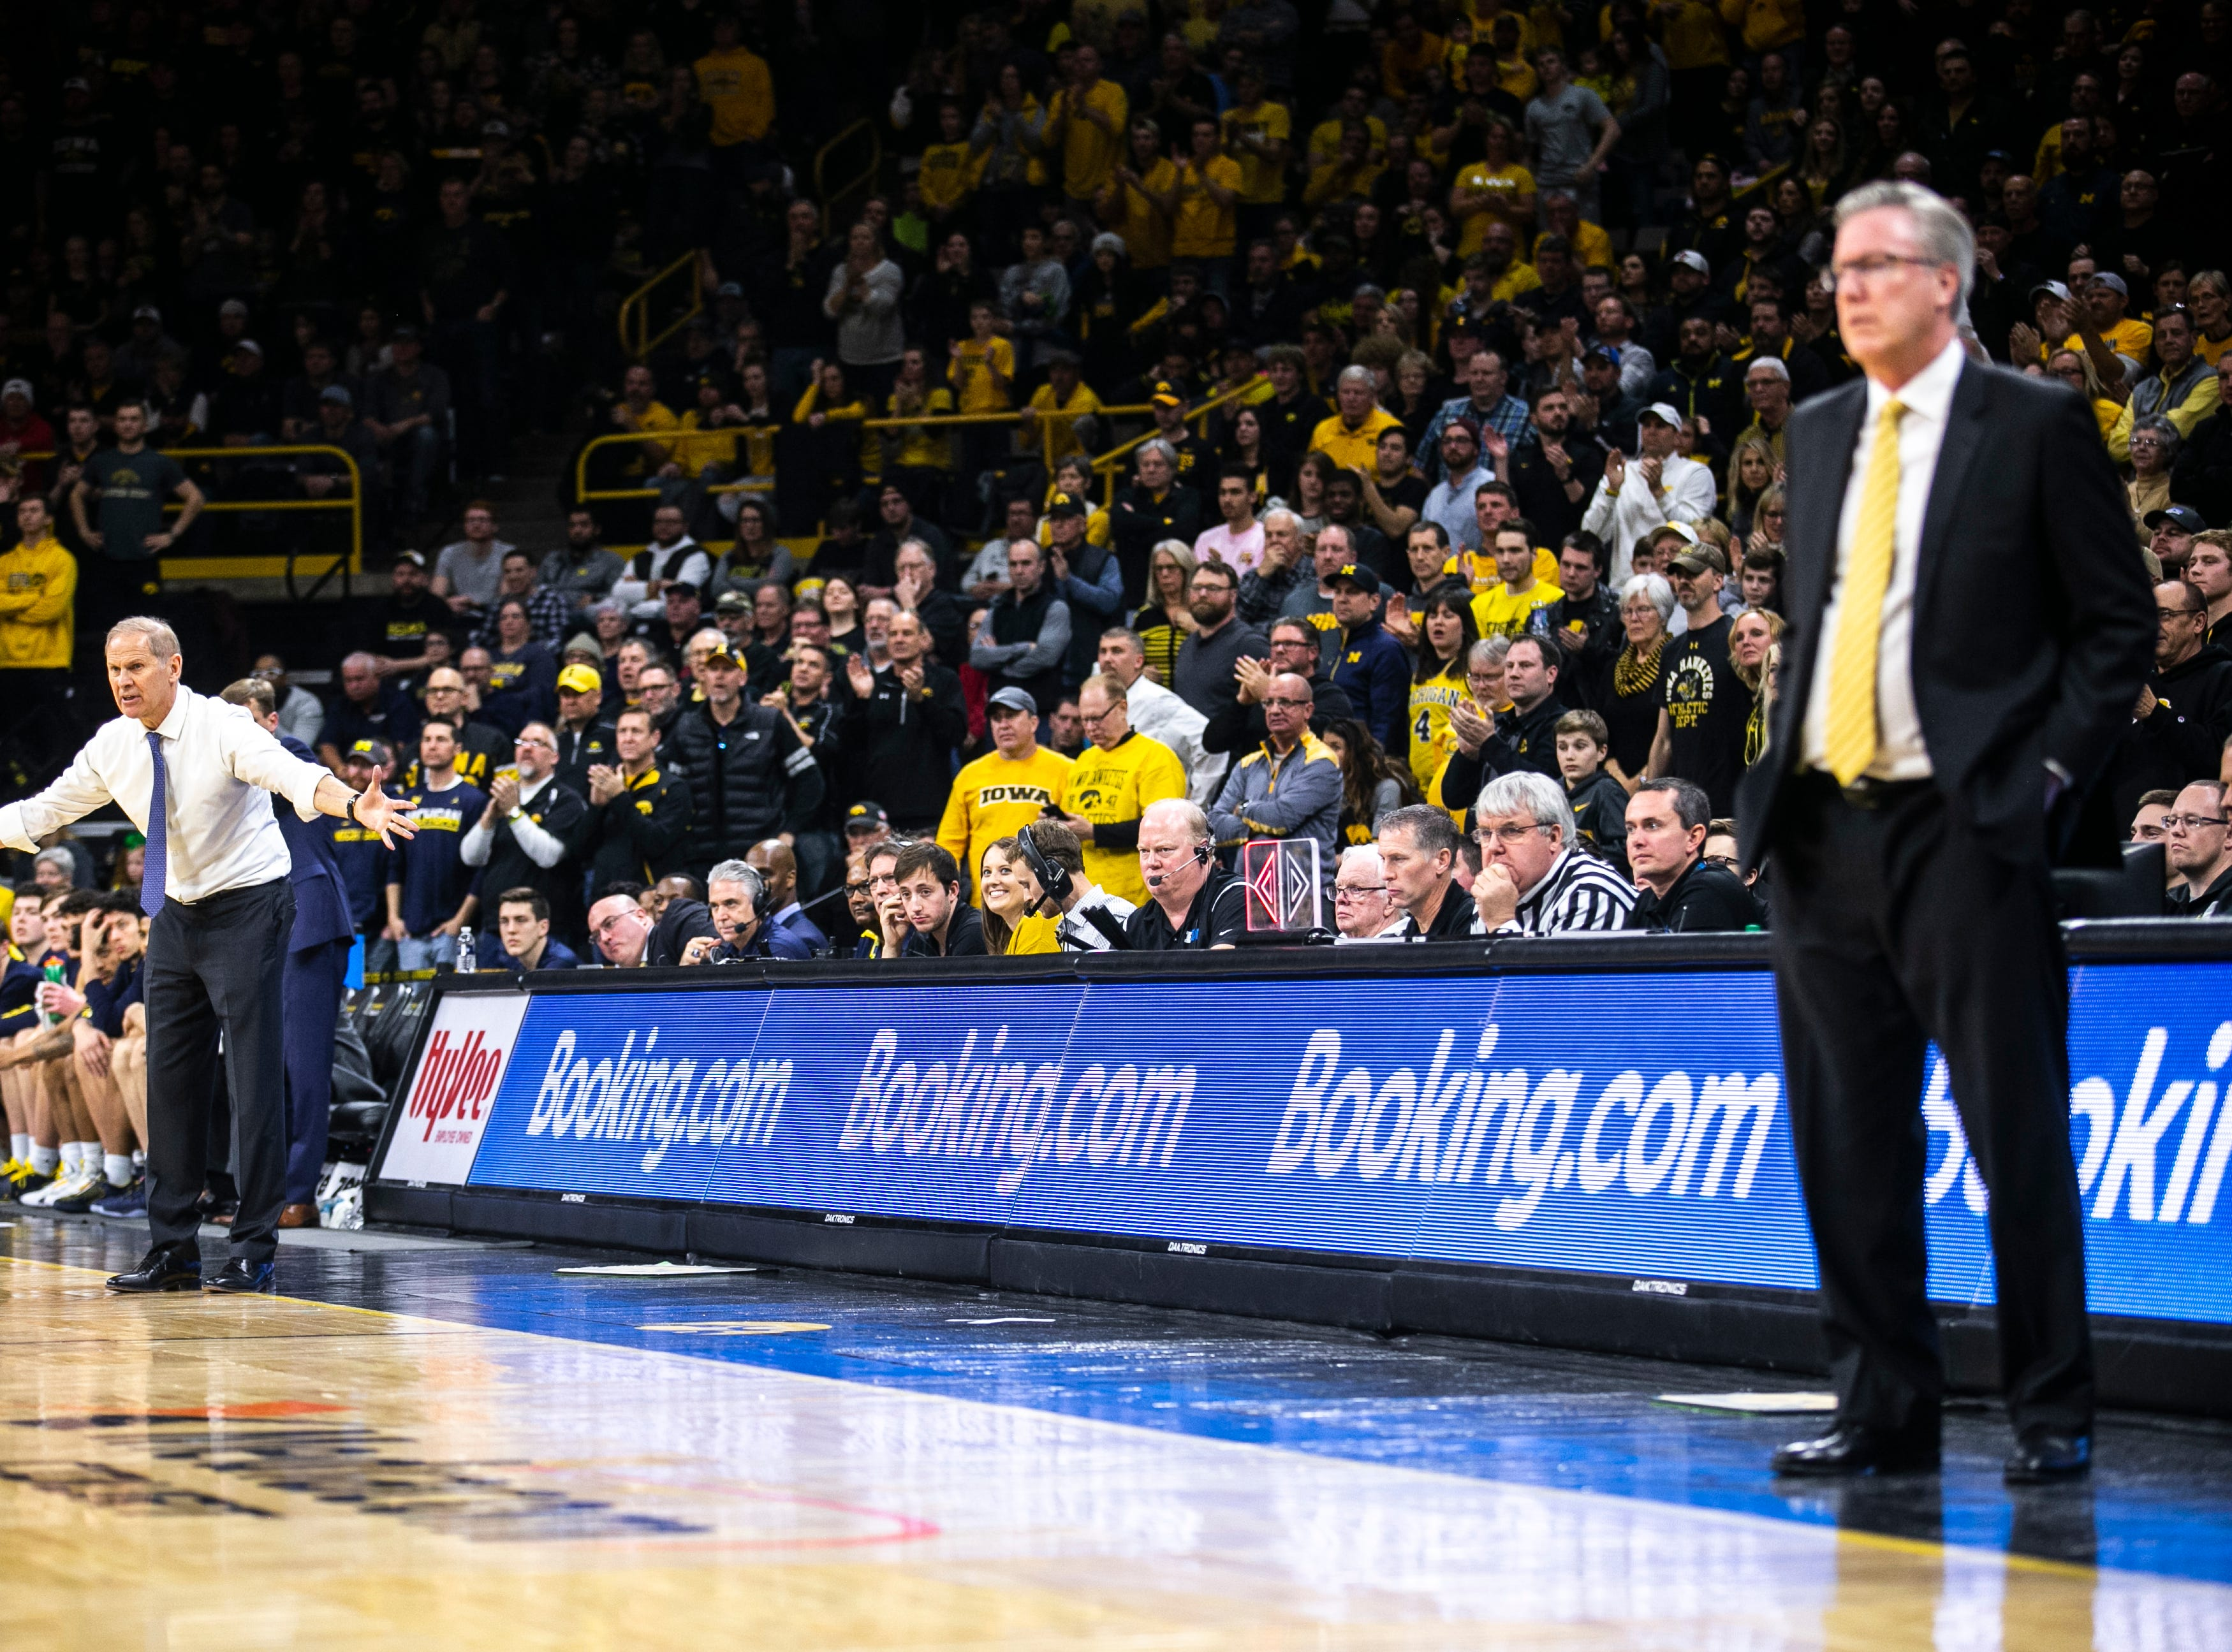 Michigan head coach Jim Beilein, far left, gestures while Iowa men's basketball head coach Fran McCaffery stands along the baseline during a NCAA Big Ten Conference men's basketball game on Friday, Feb. 1, 2019, at Carver-Hawkeye Arena in Iowa City, Iowa.